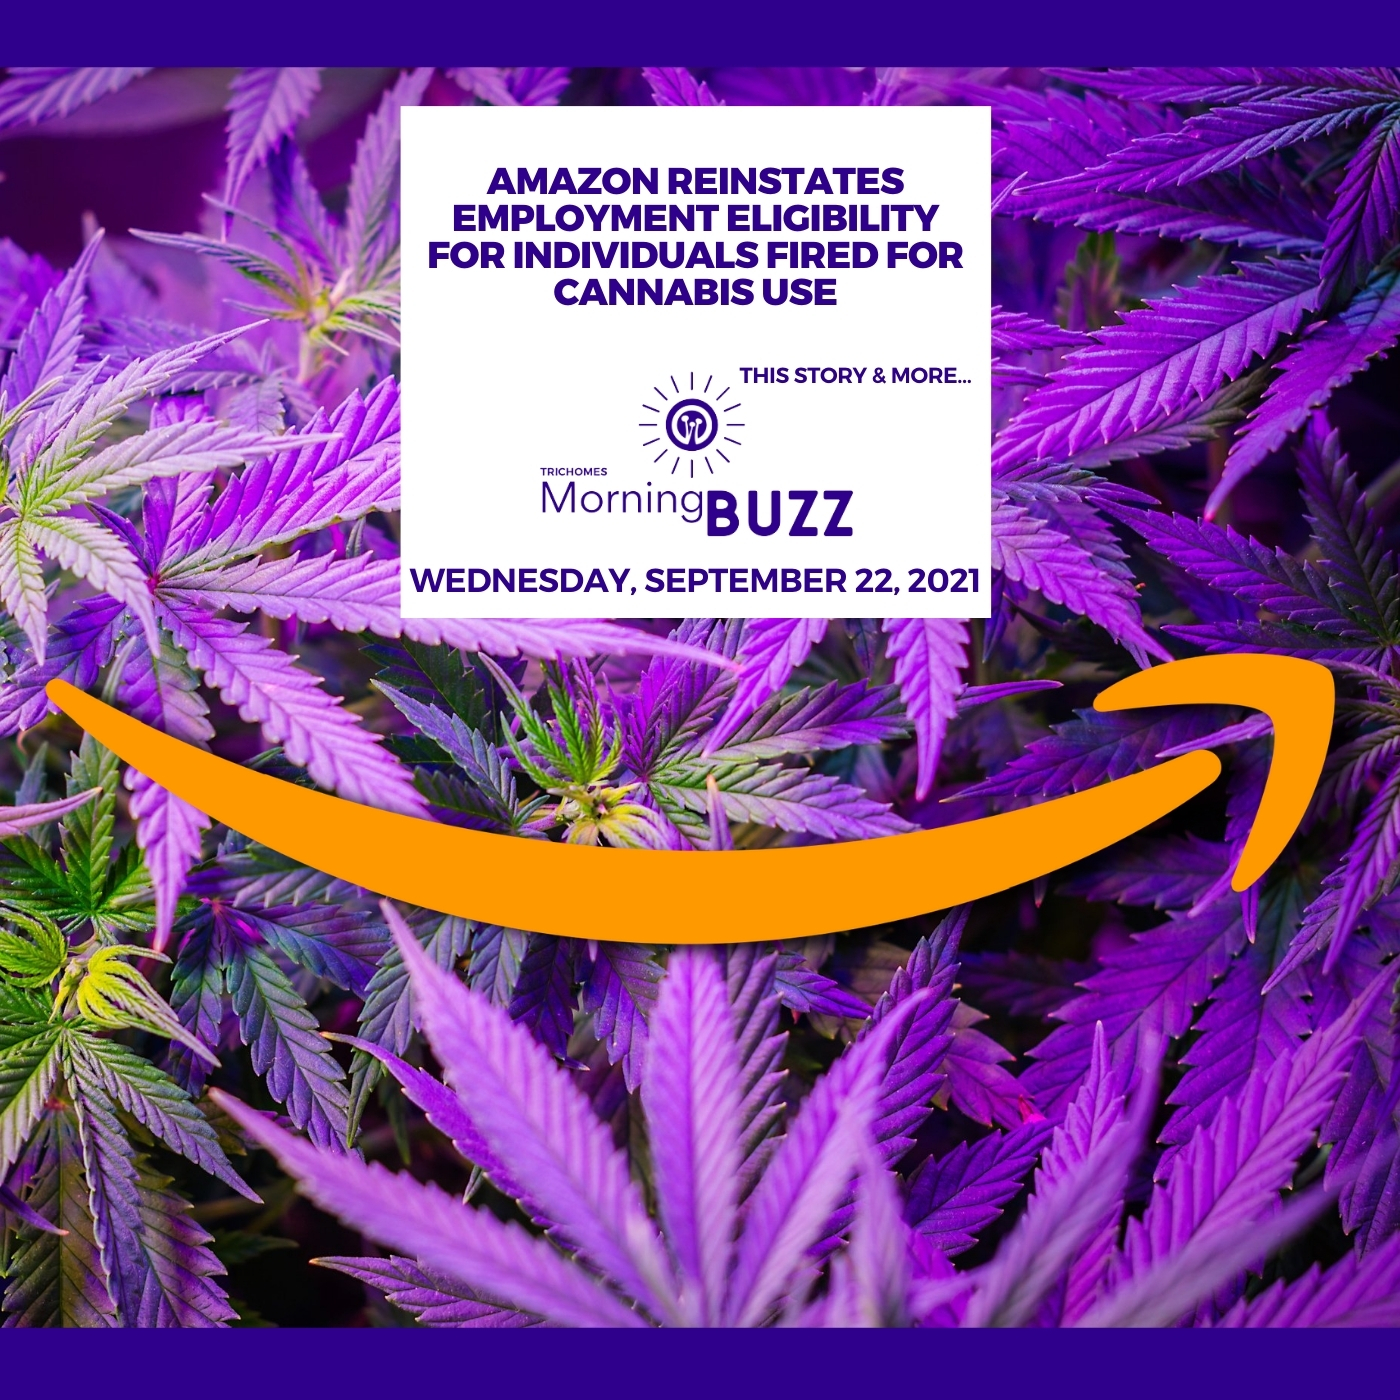 Amazon Reinstates Employment Eligibility For Individuals Fired For Cannabis Use show art